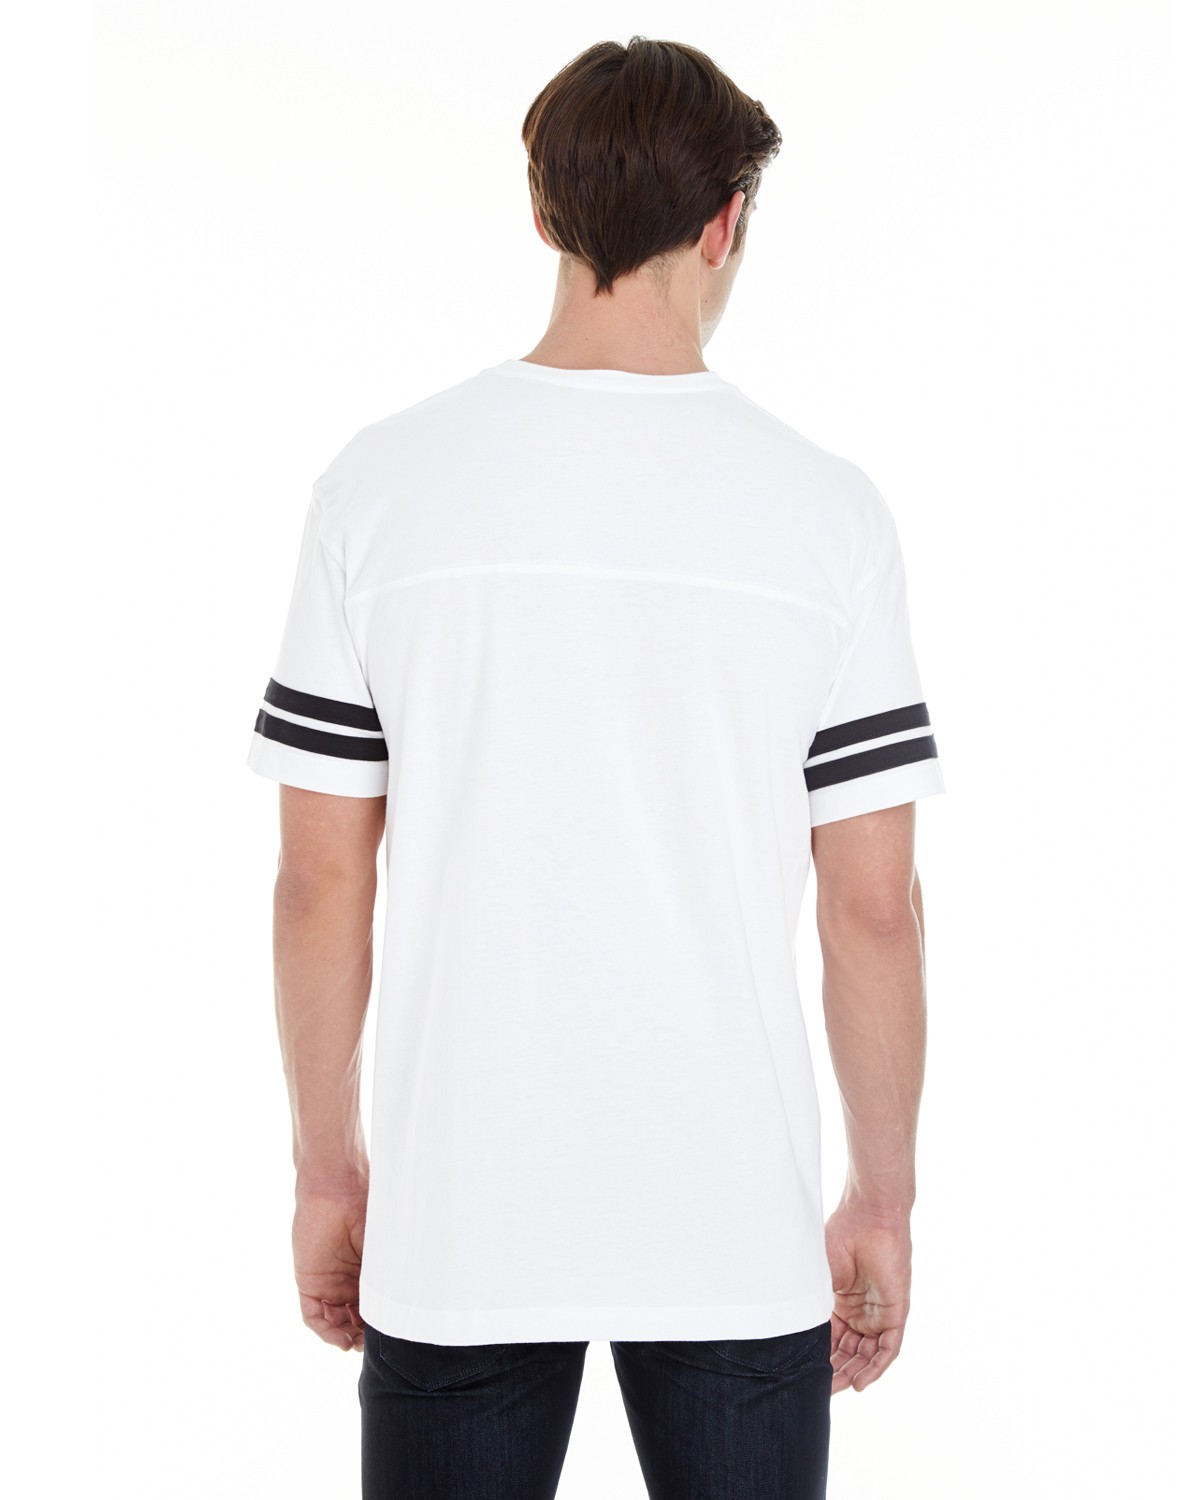 6937 LAT WHITE/BLACK